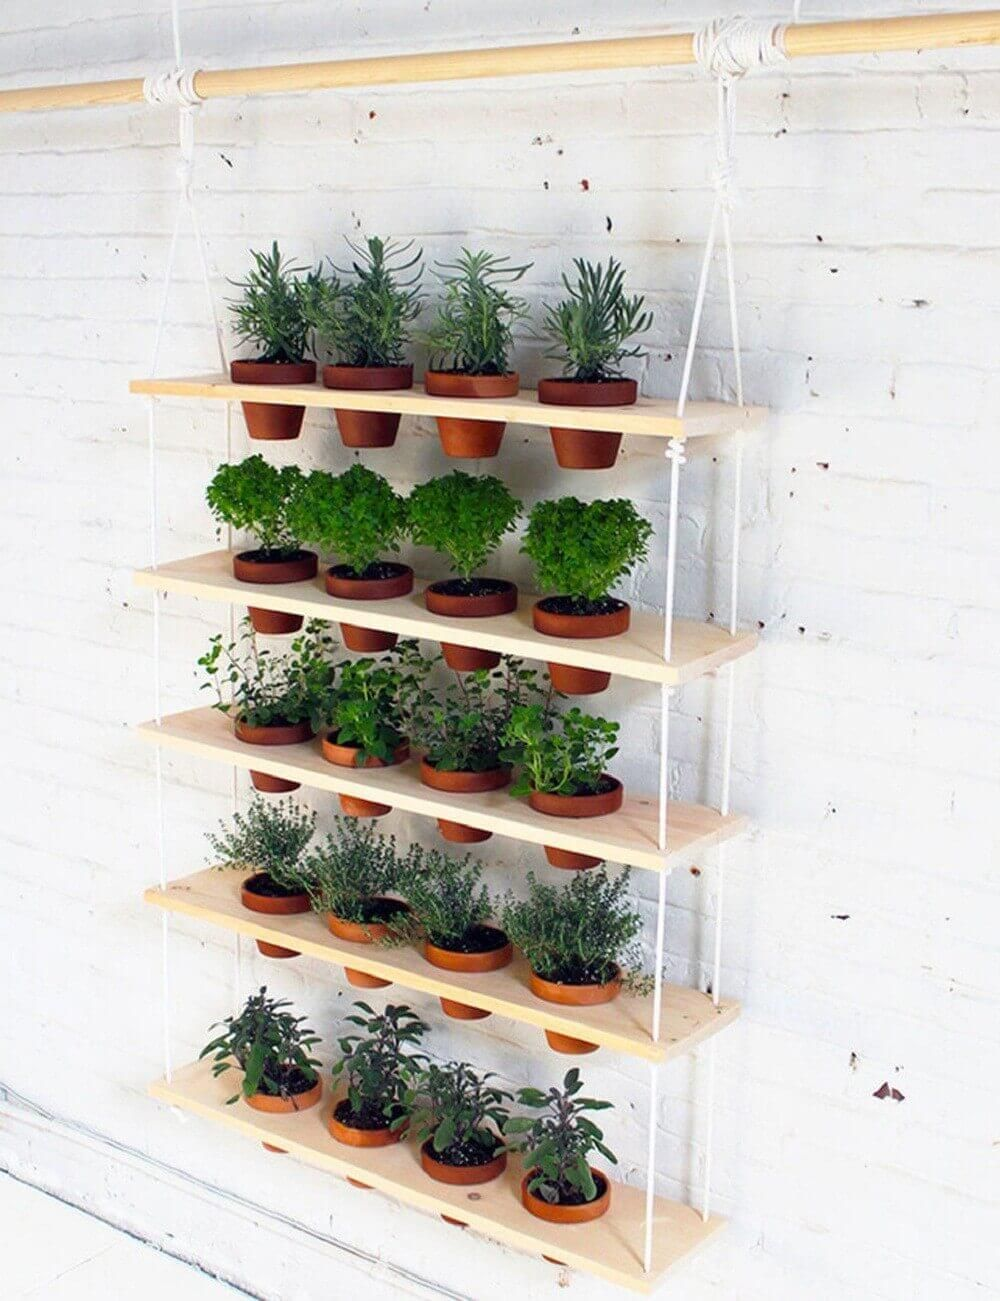 Diy herb garden made of pallets refresh your eyes and mind with pallet - 45 Charming Outdoor Hanging Planter Ideas To Brighten Your Yard Diy Vertical Gardenvertical Herb